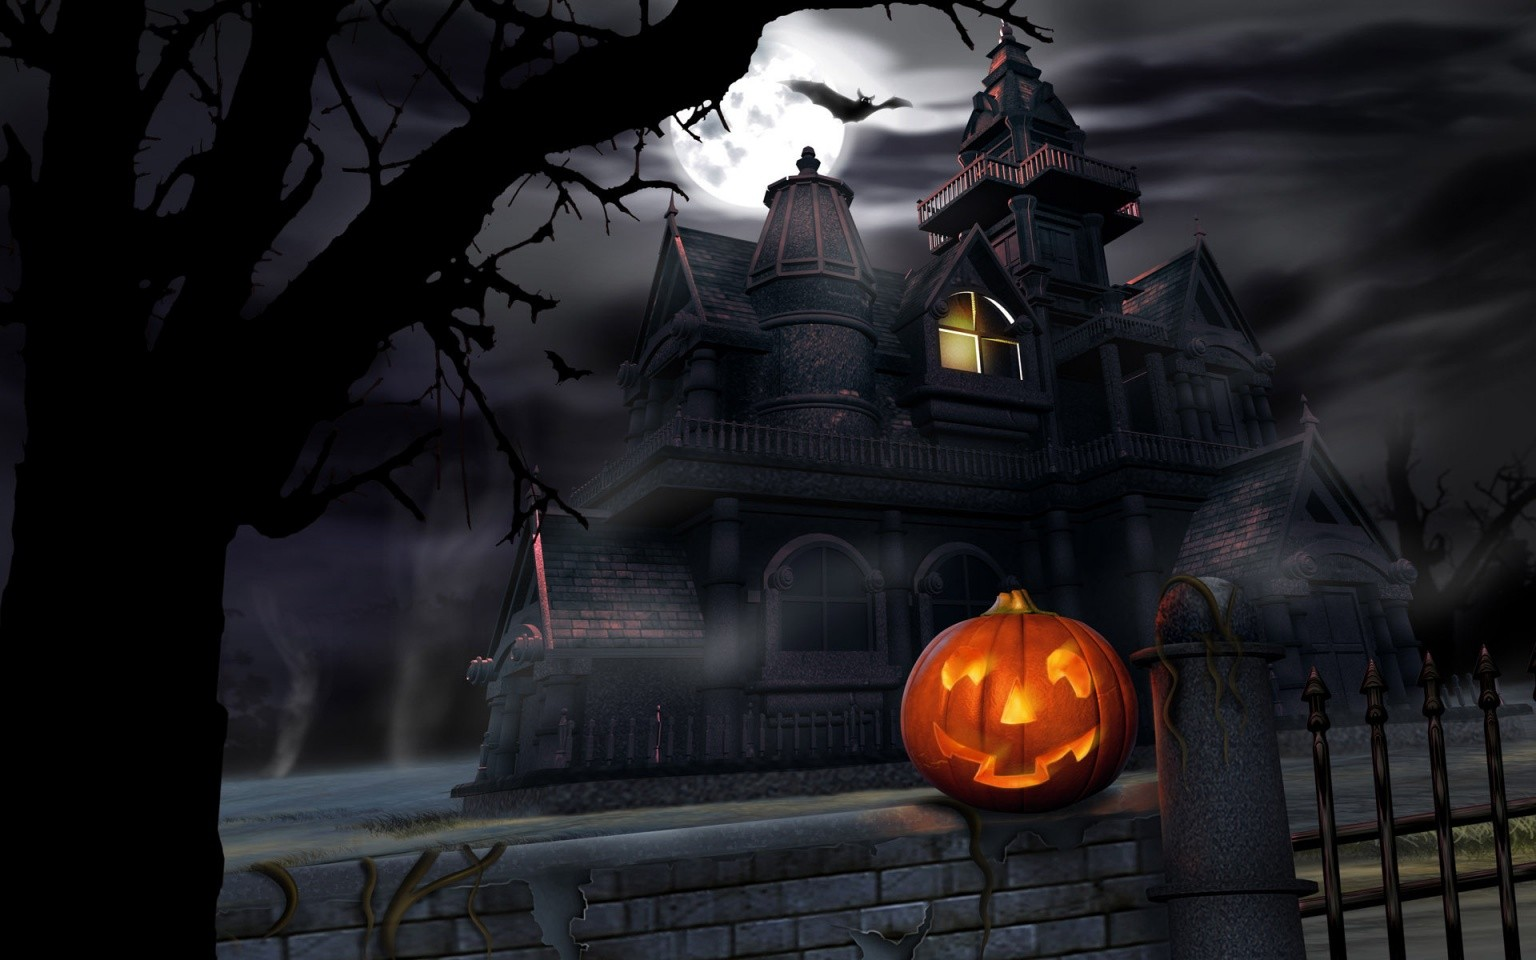 Outdoor Halloween Decorations scary pumpkin and house